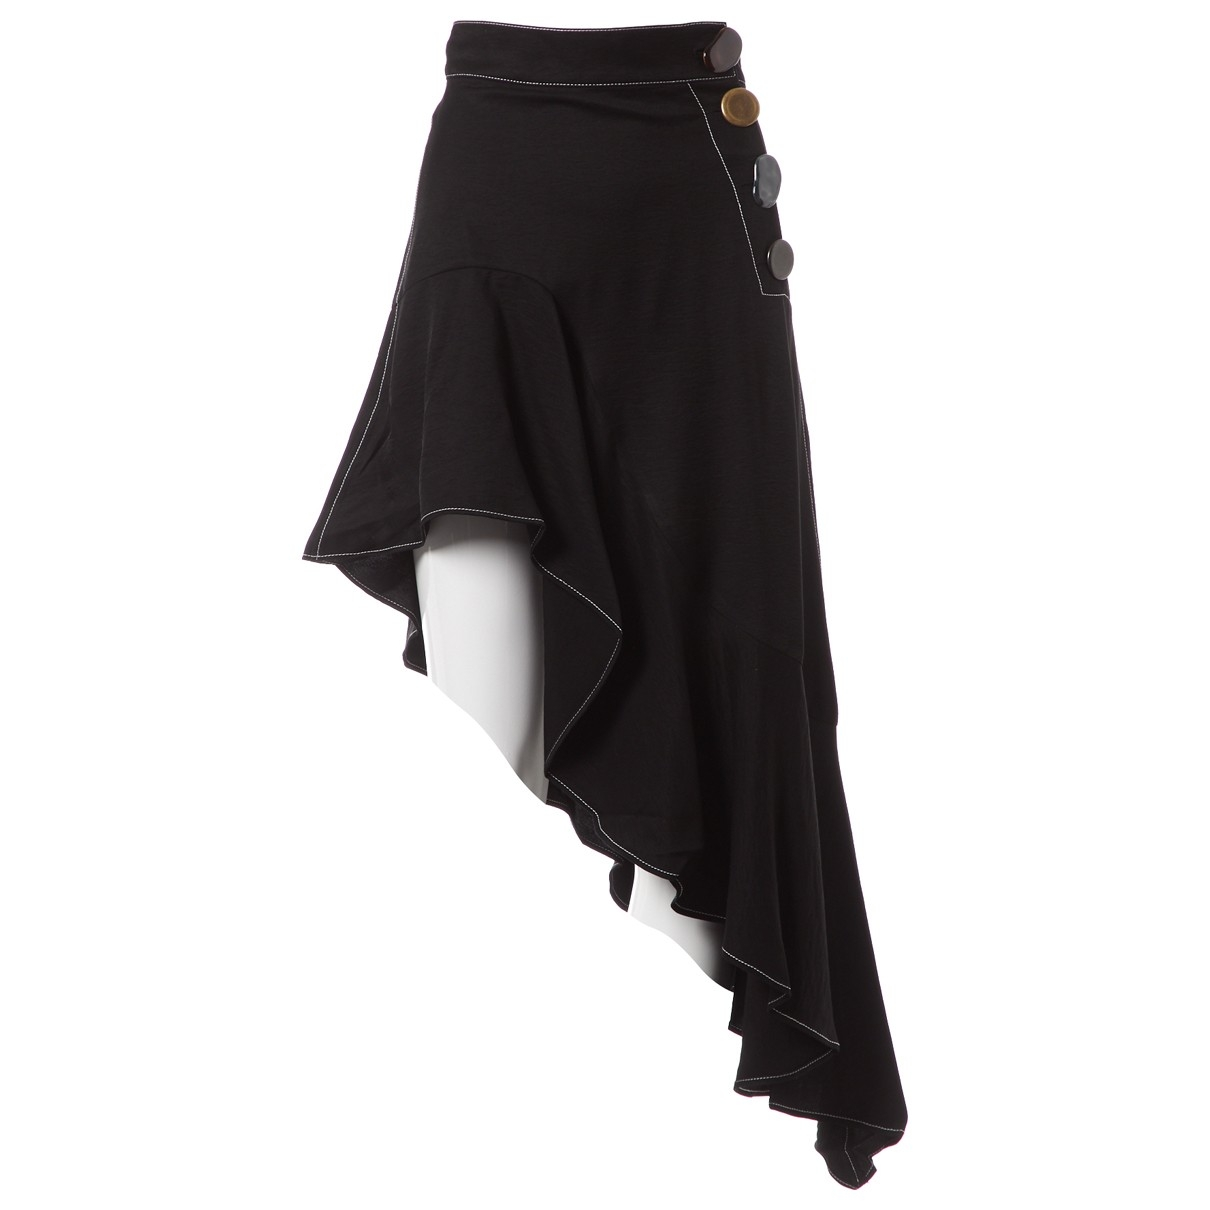 Rejina Pyo X Vestiaire Collective Mid-length skirt